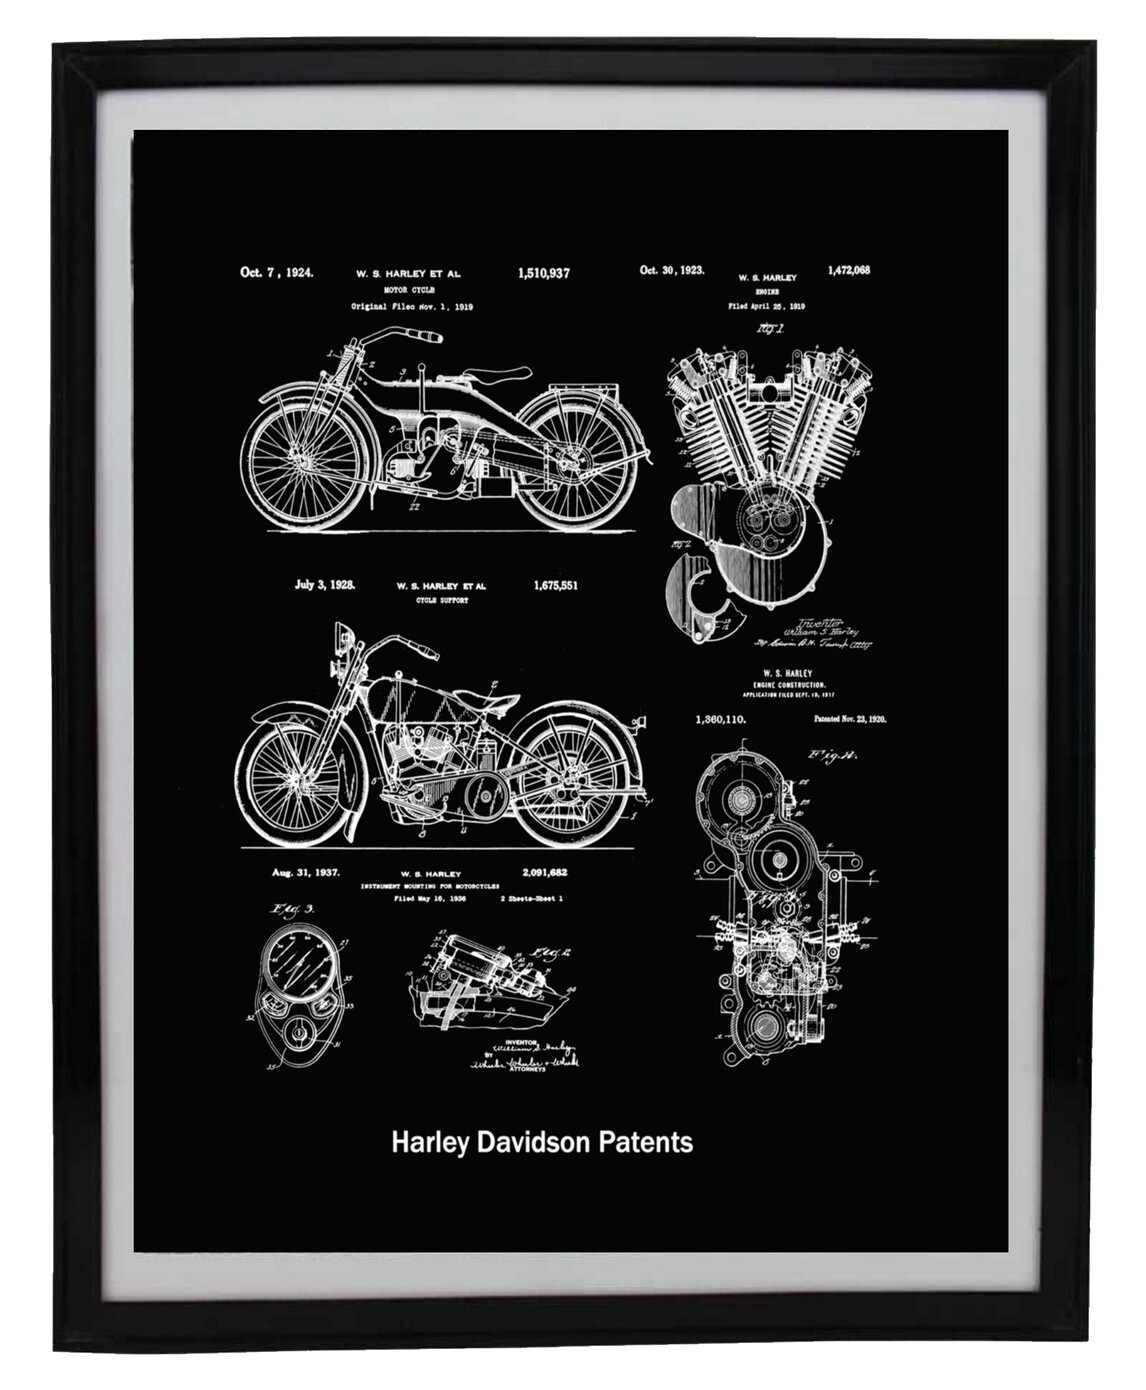 Harley Davidson Collage Patent Print - Black or Blueprint Framed